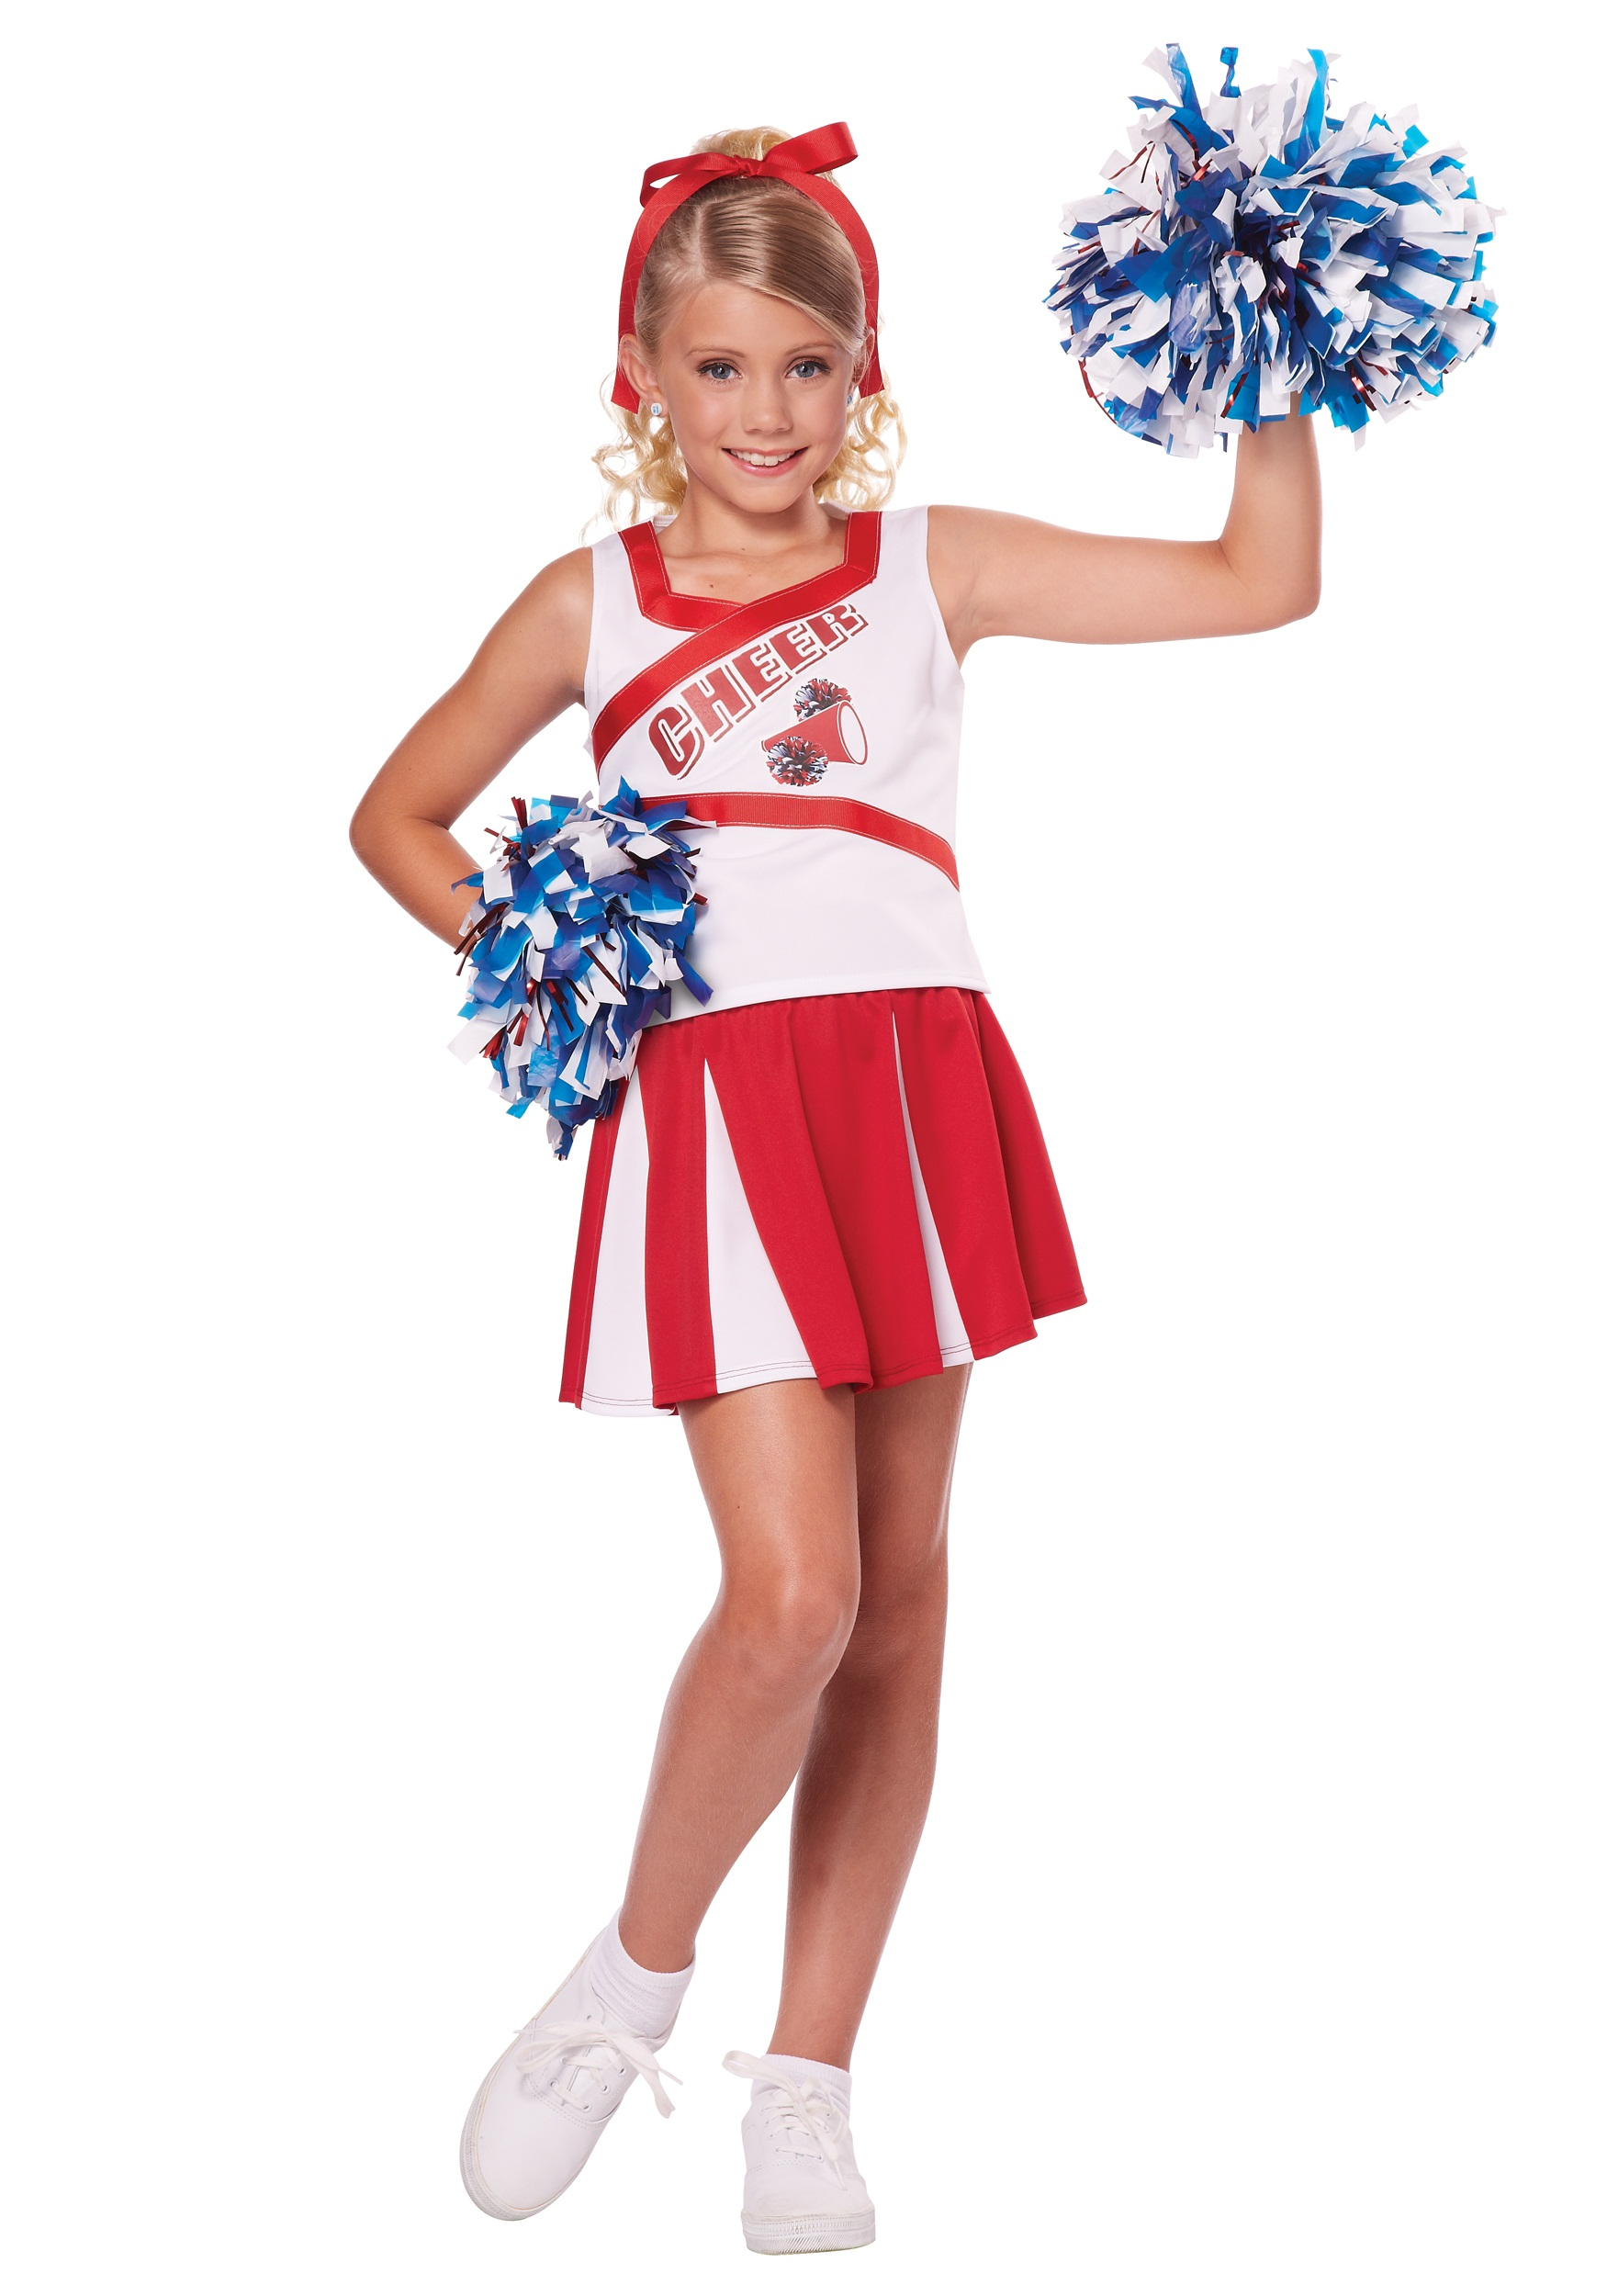 Child High School Cheerleader Costume  sc 1 st  Halloween Costumes & Child High School Cheerleader Costume - Halloween Costumes